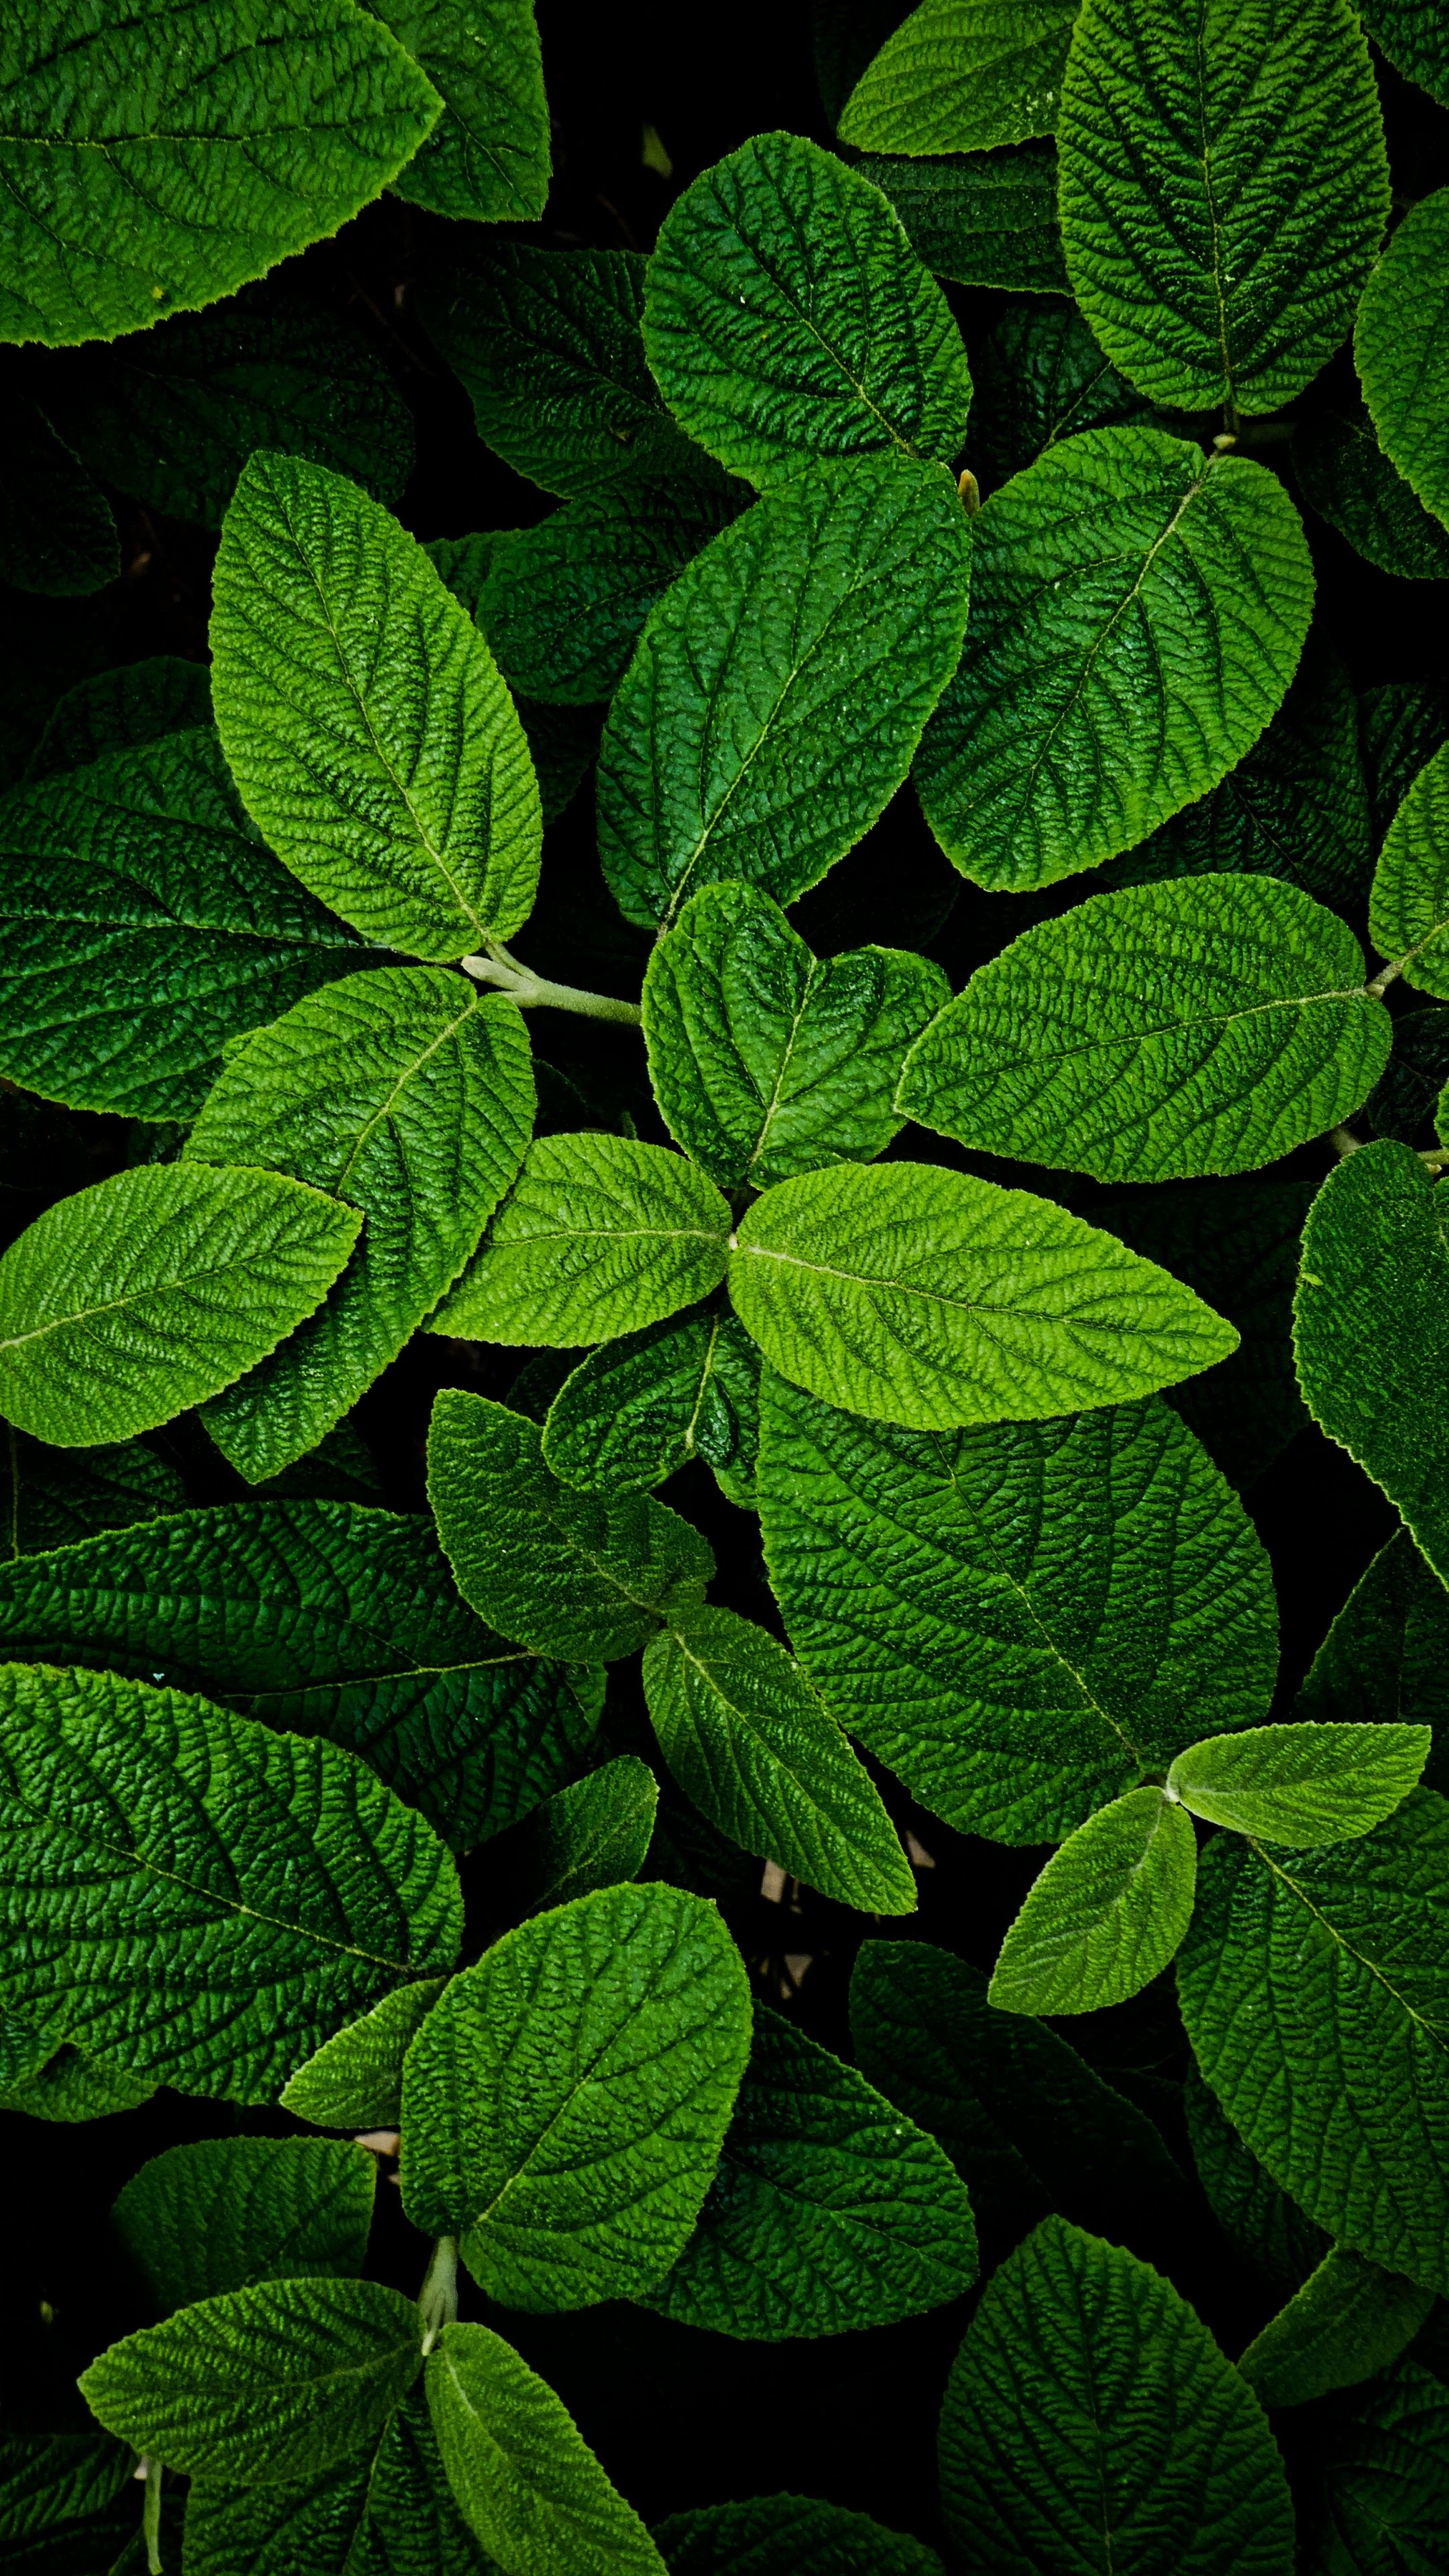 Leaves, macro, bright and green, 2160x3840 wallpaper